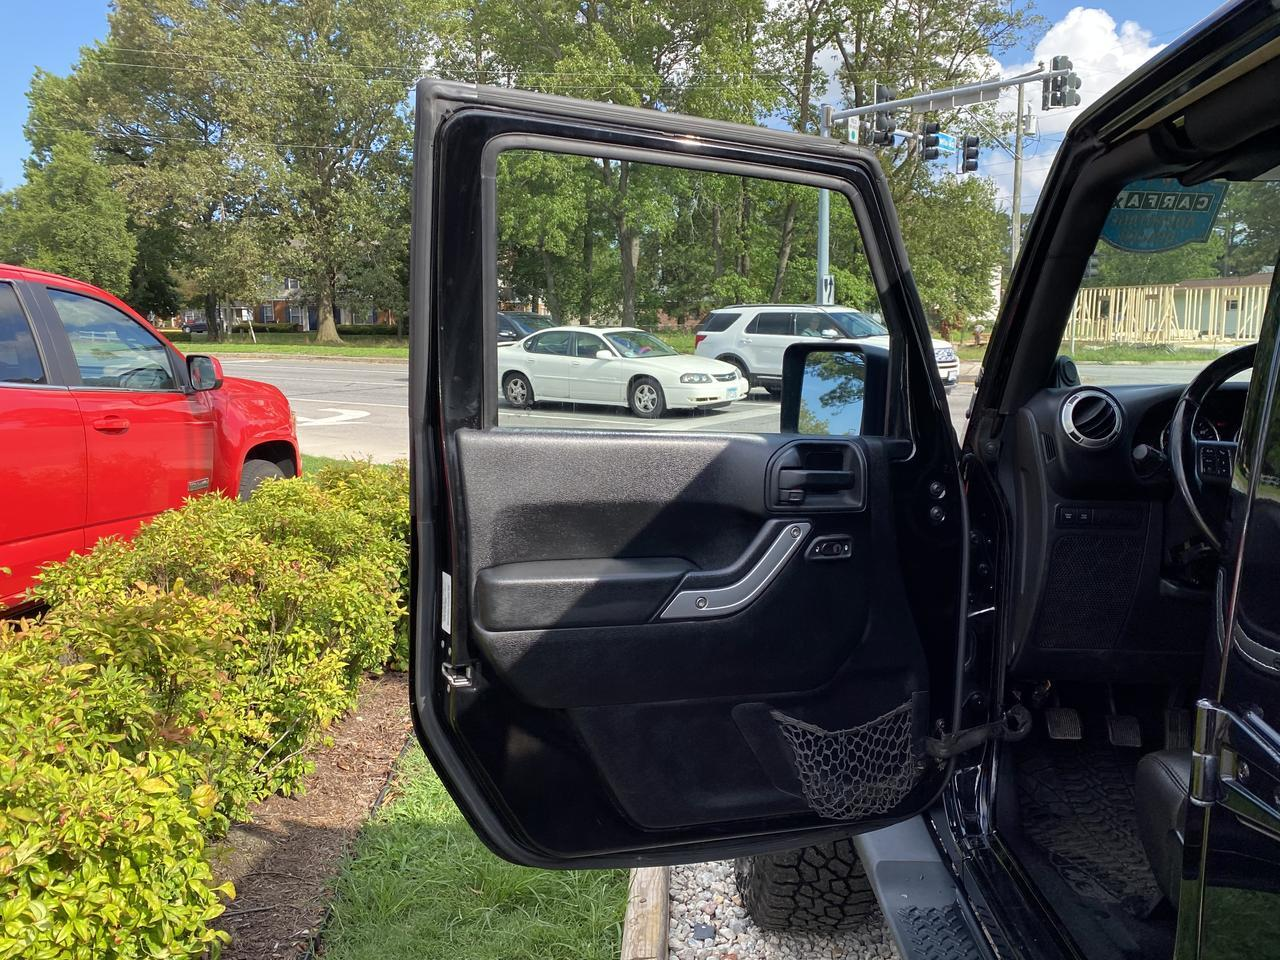 2012 JEEP WRANGLER UNLIMITED RUBICON 4X4, WARRANTY, MANUAL, HARD TOP, NAV, LEATHER, HEATED FRONT SEATS, CLEAN CARFAX! Norfolk VA